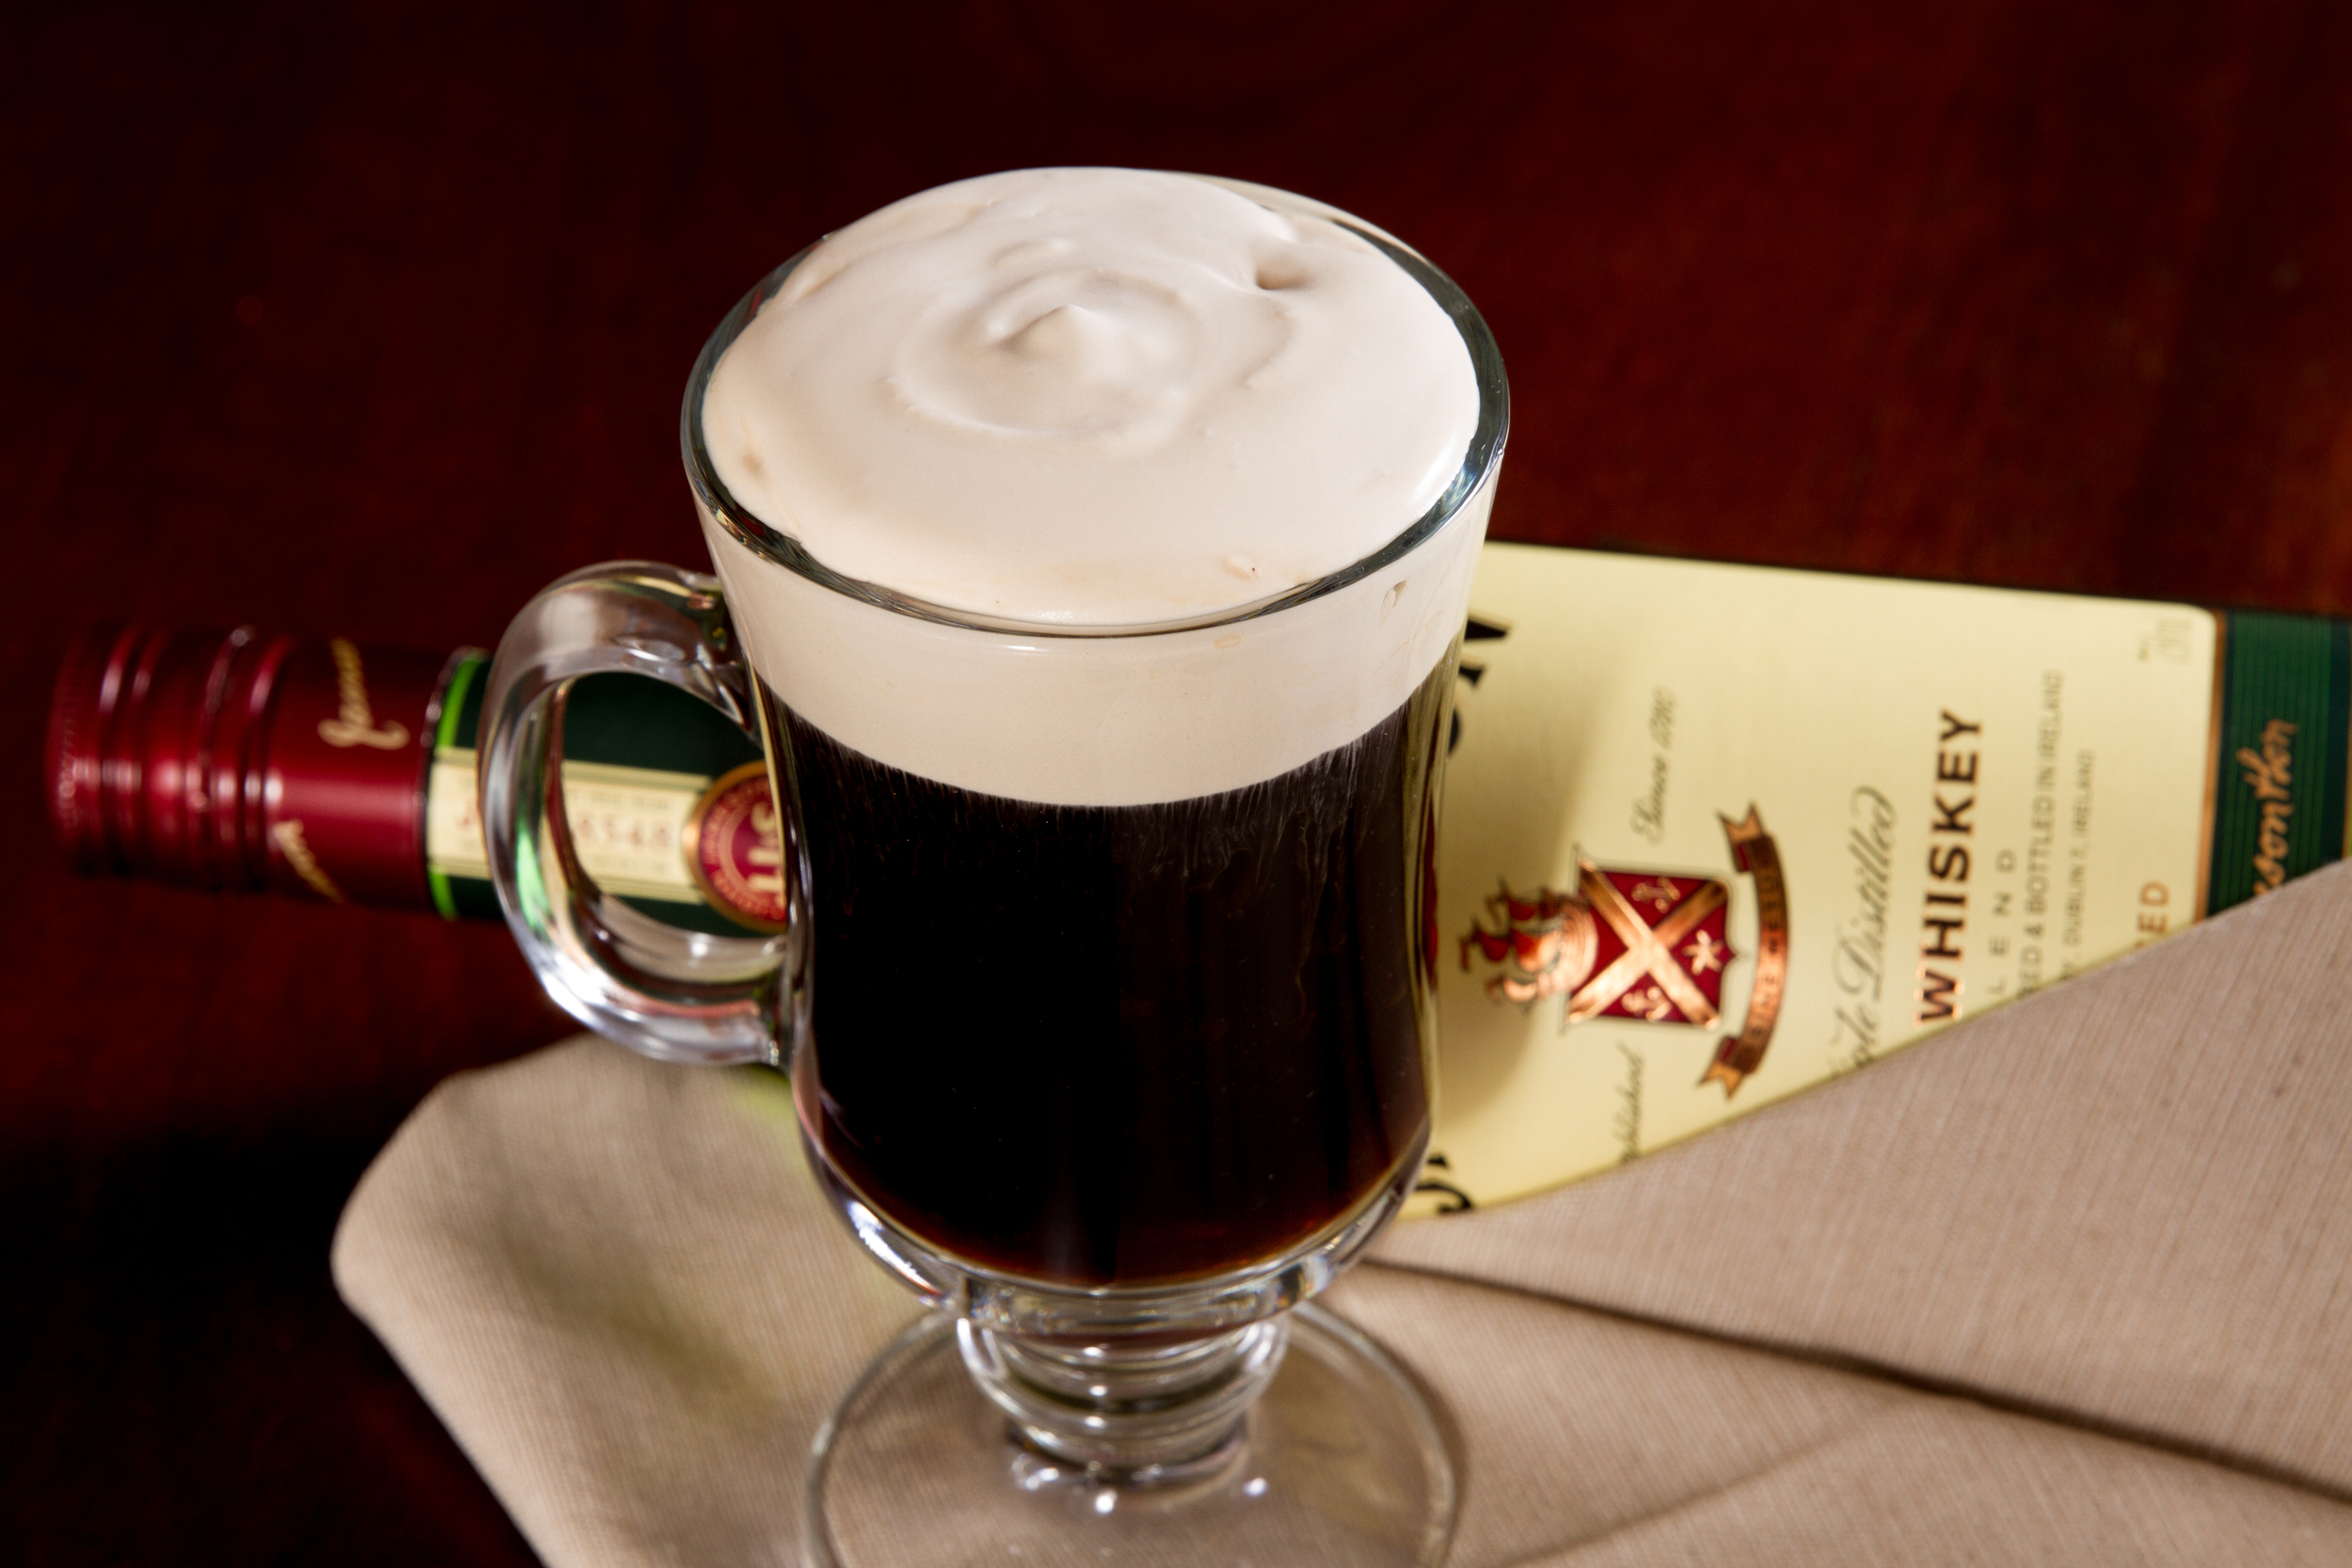 Irish Coffee made with Cafe' Luxe stainless steel made with Cafe' Luxe best milk frother and foam maker